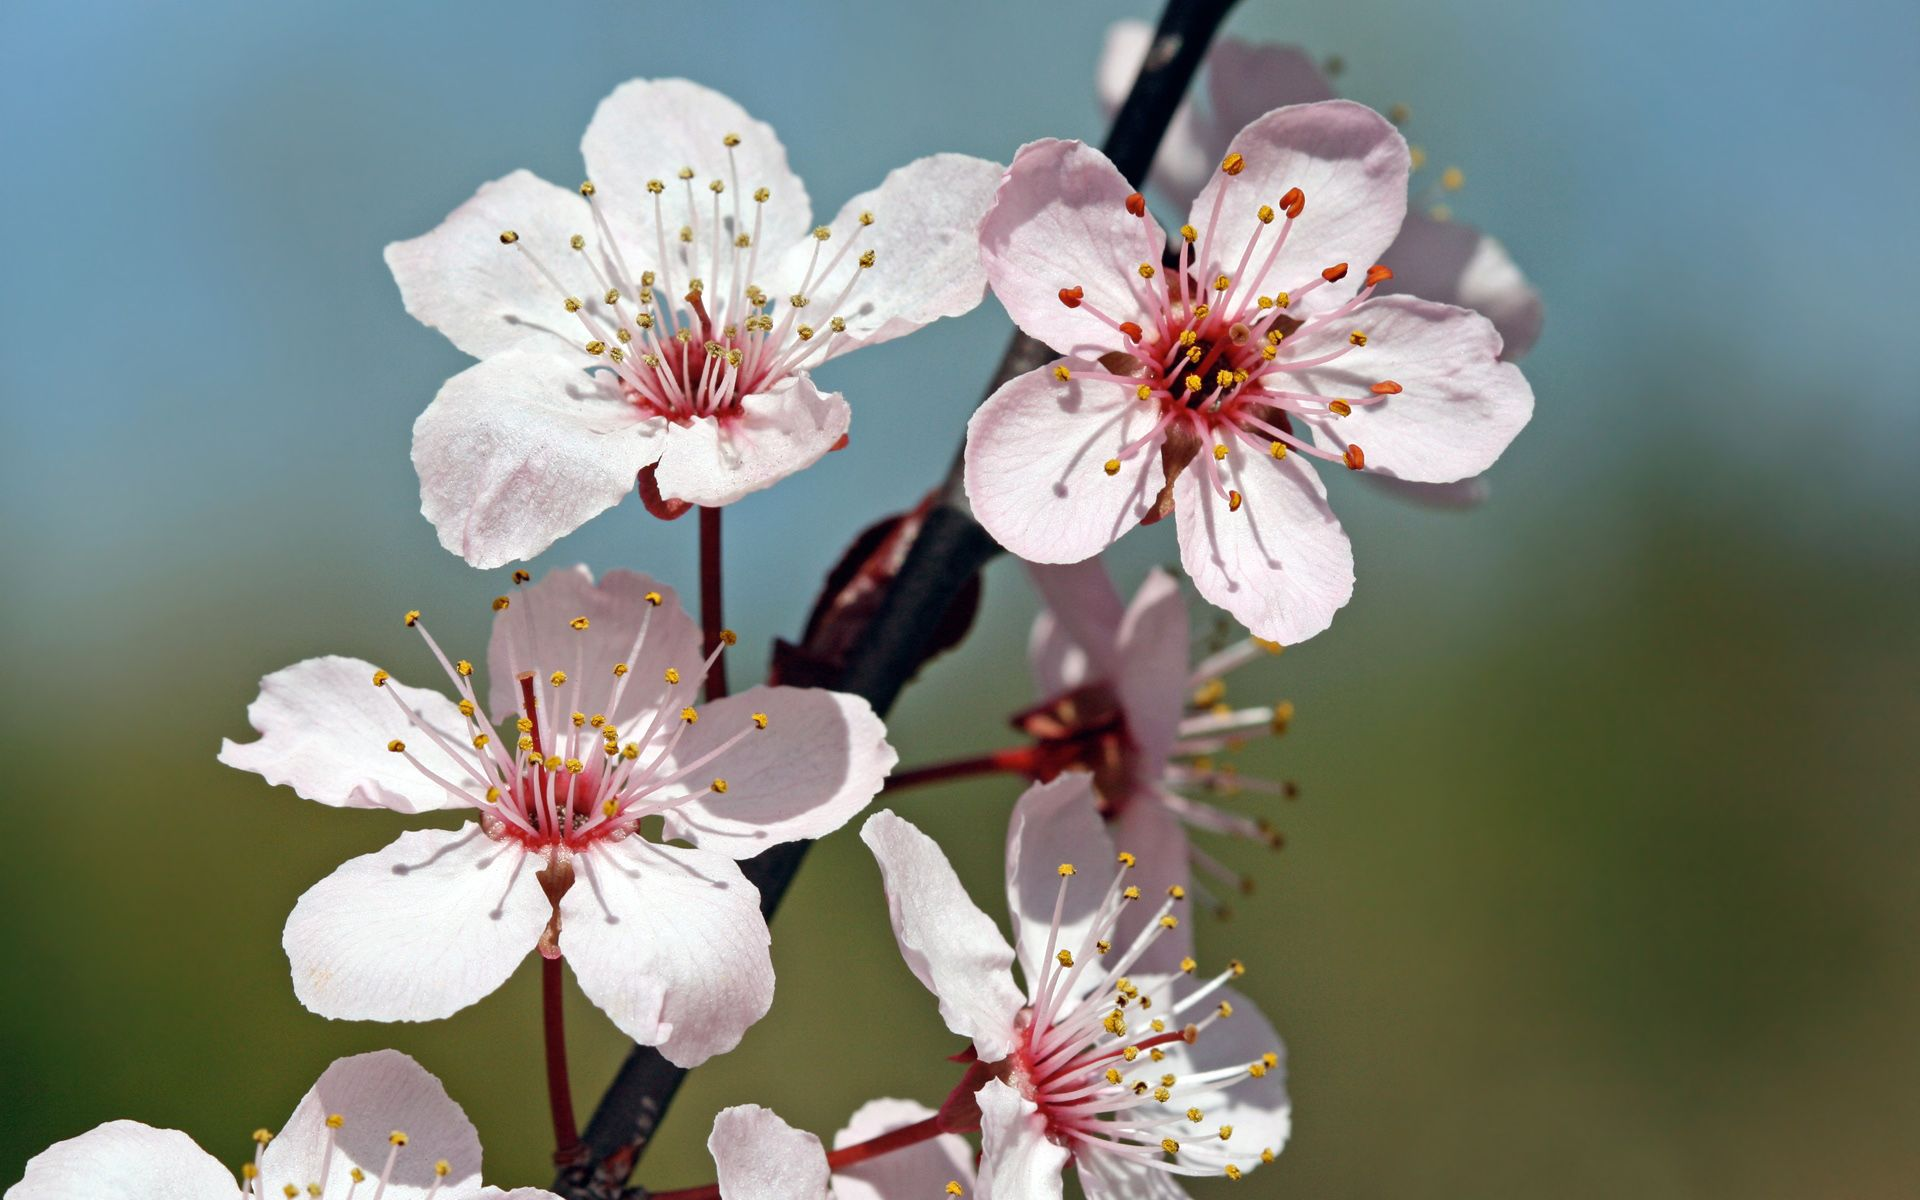 Wedding Themes Cherry Blossom Cherry Blossom Wallpaper Cherry Blossom Pictures Types Of Cherries